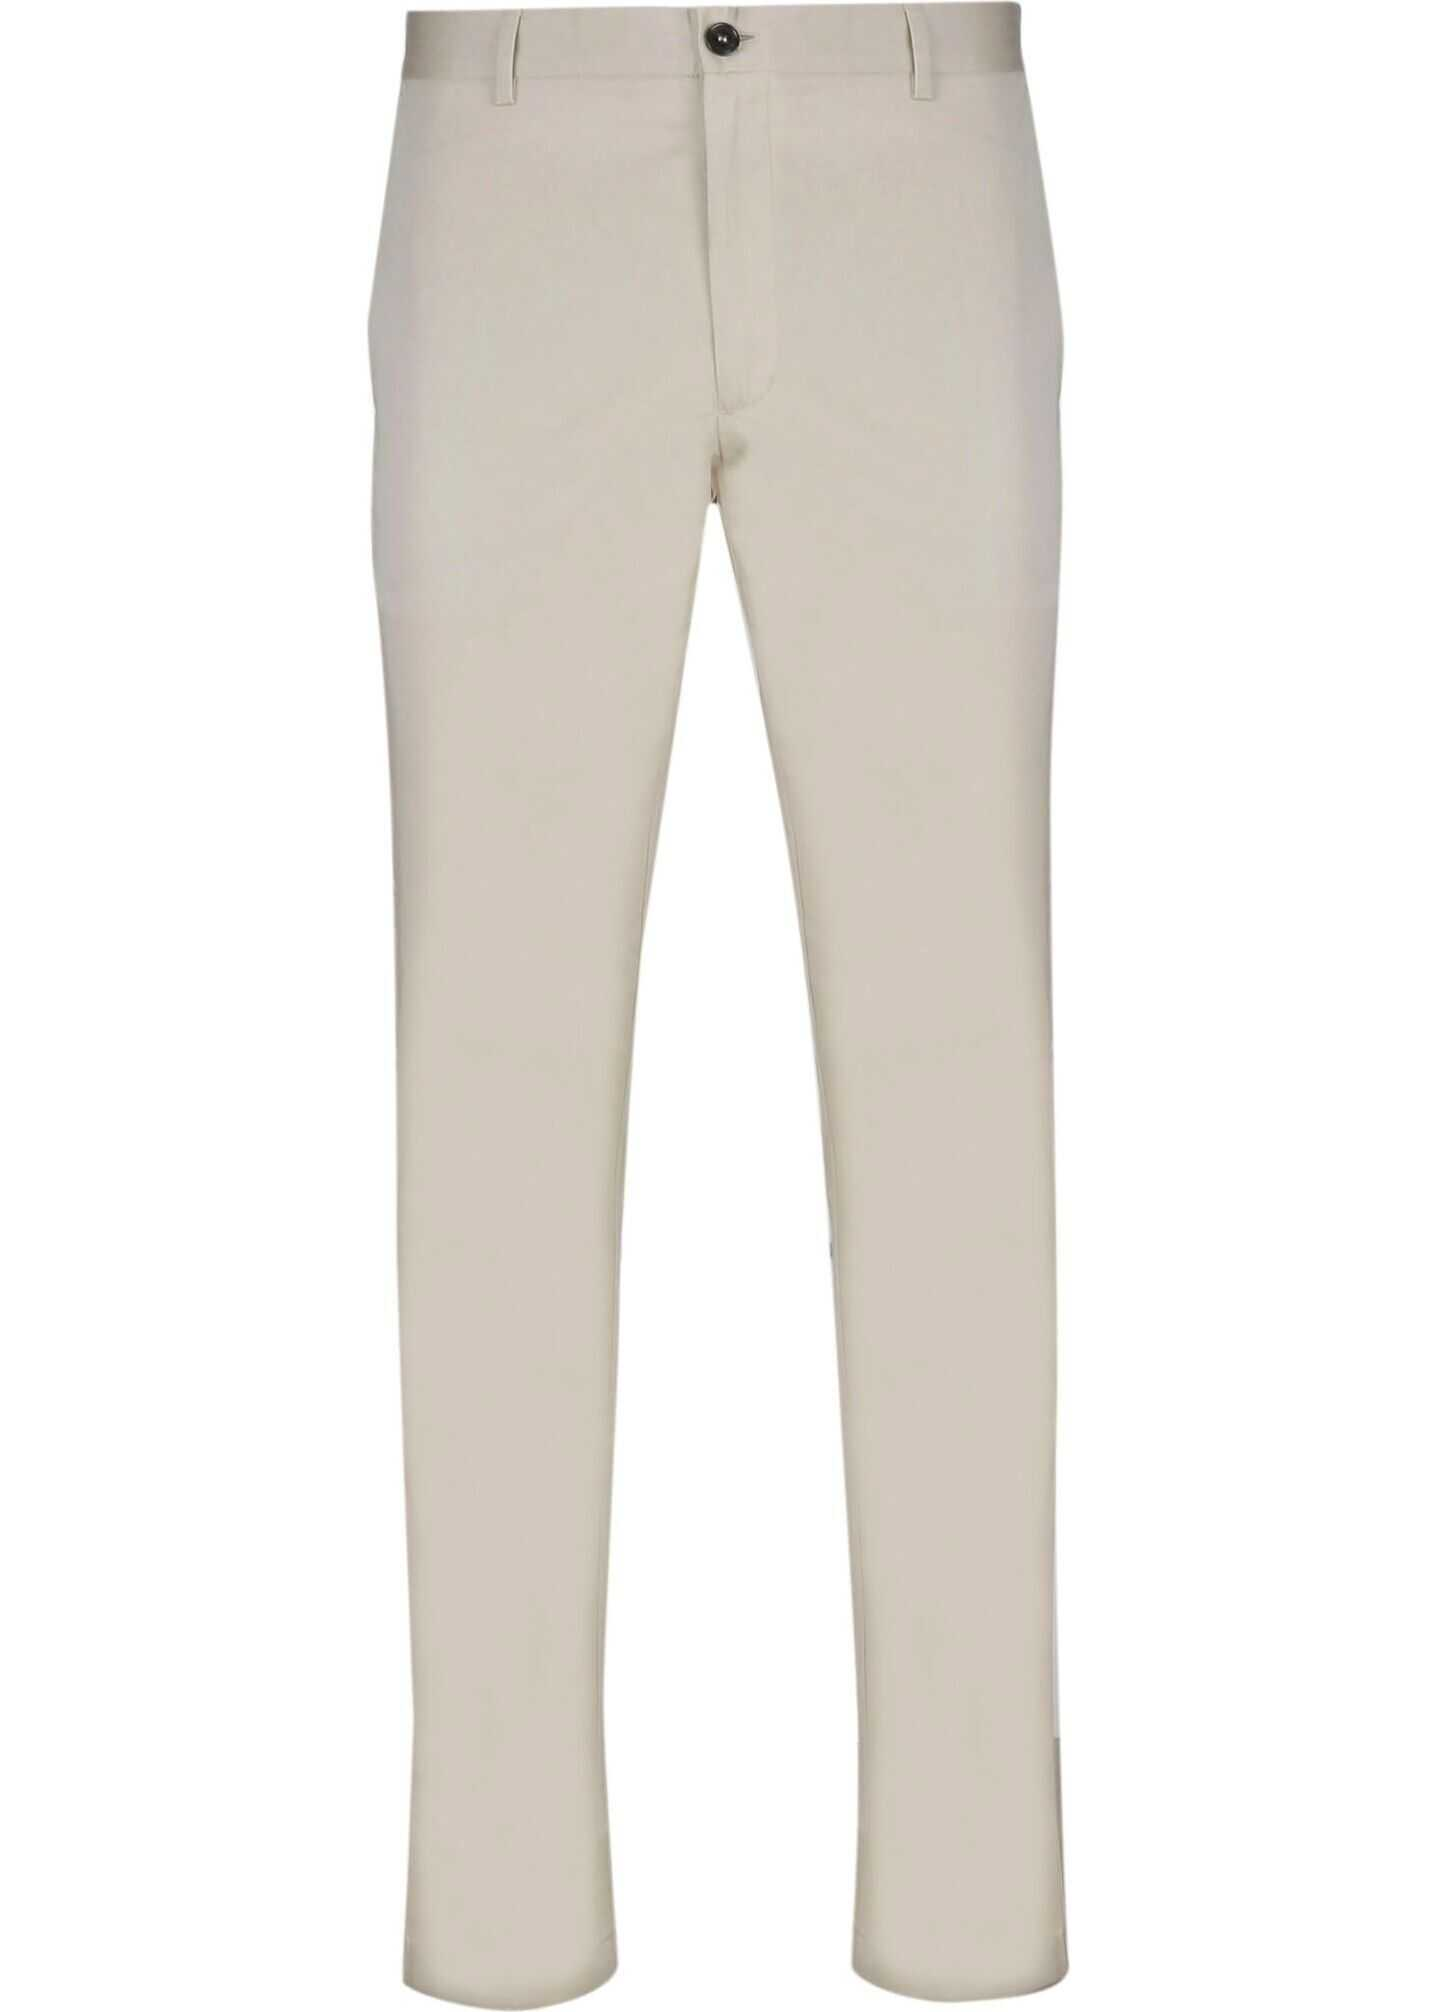 Burberry Cotton Pants WHITE